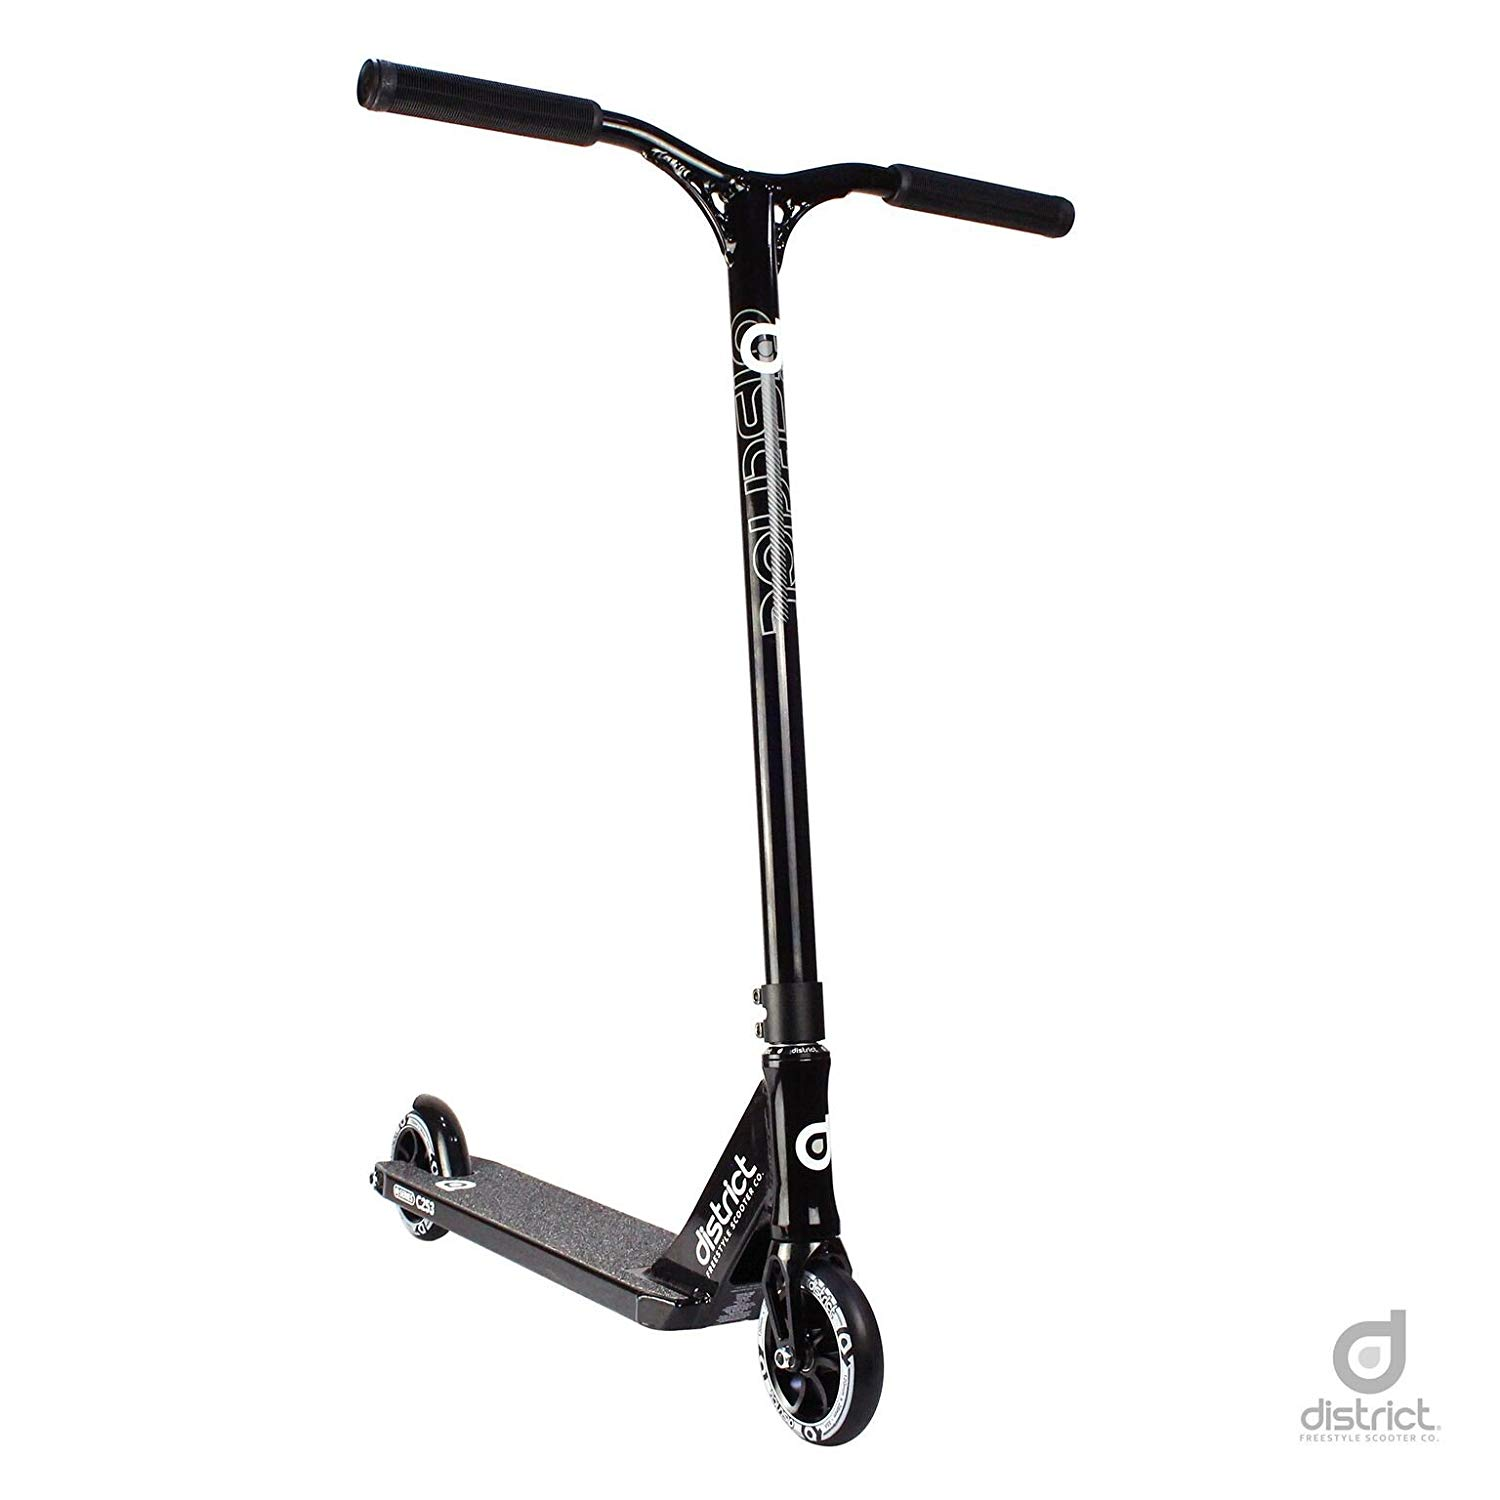 District C253 Pro Scooter